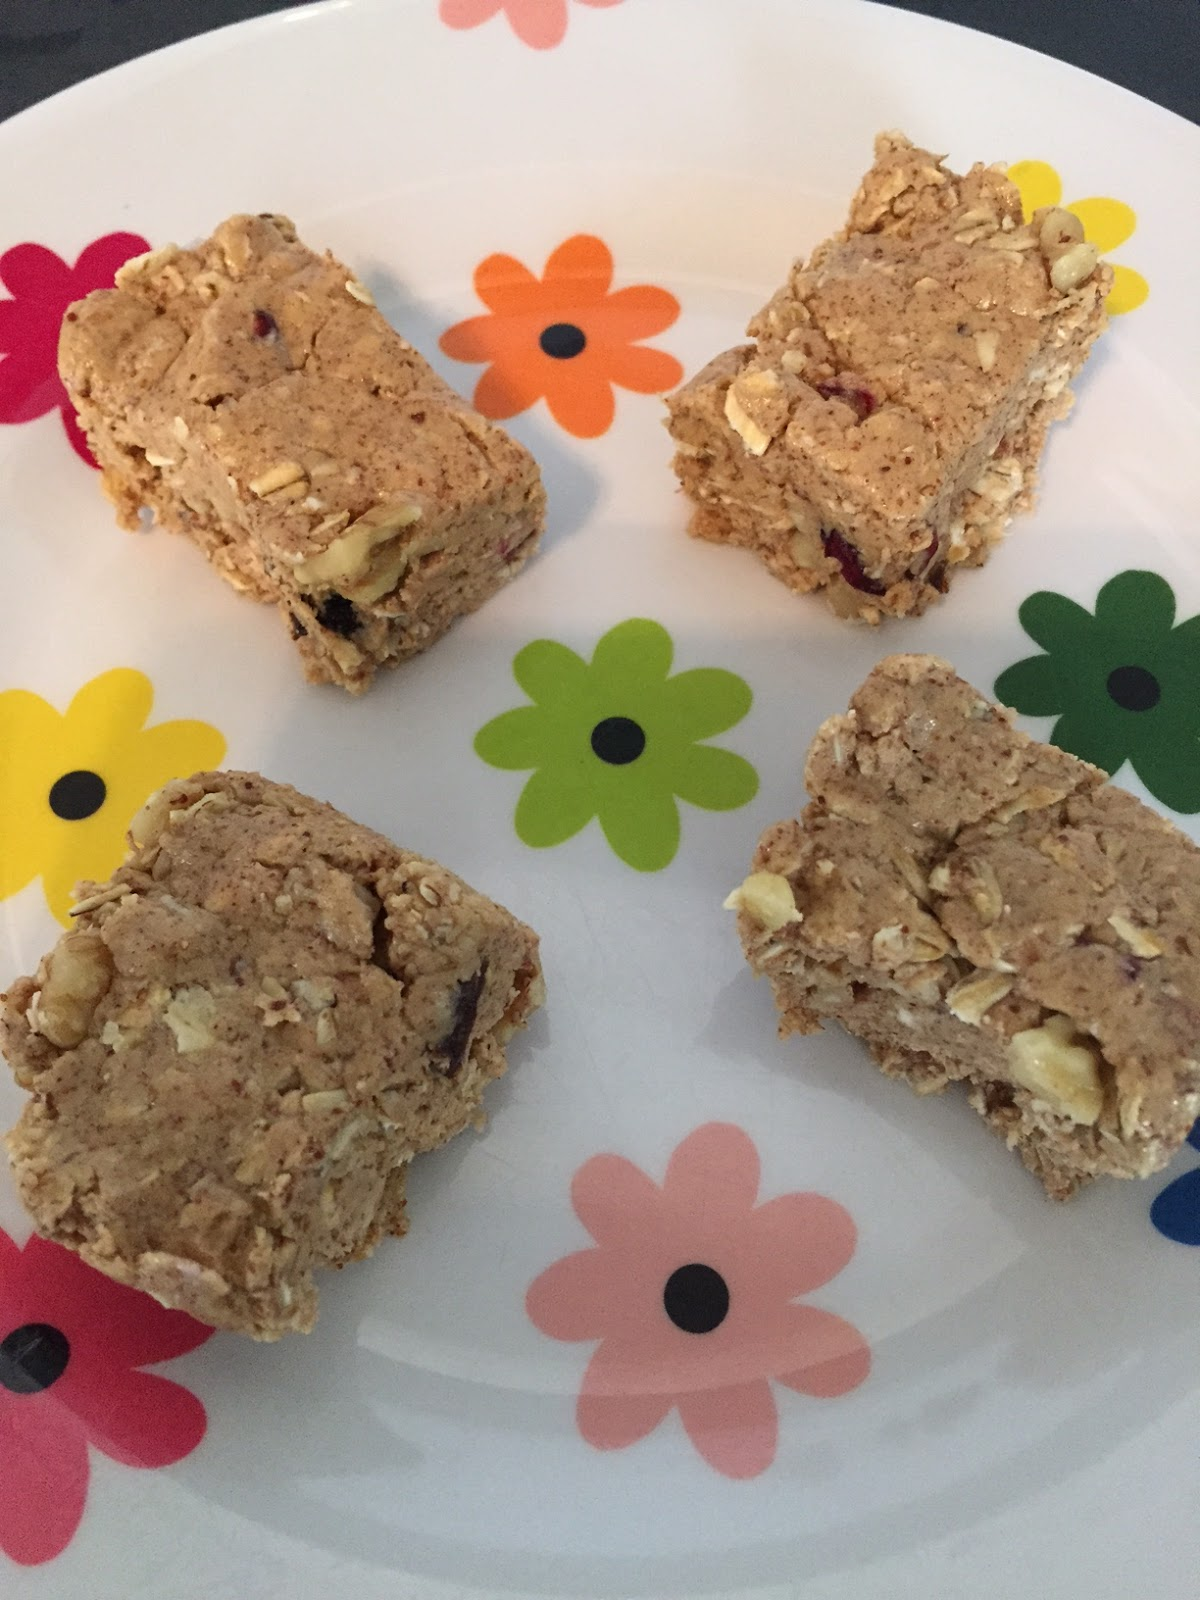 My Arbonne Addiction Vegan Gluten Free Oatmeal Fruit And Nut Protein Bars